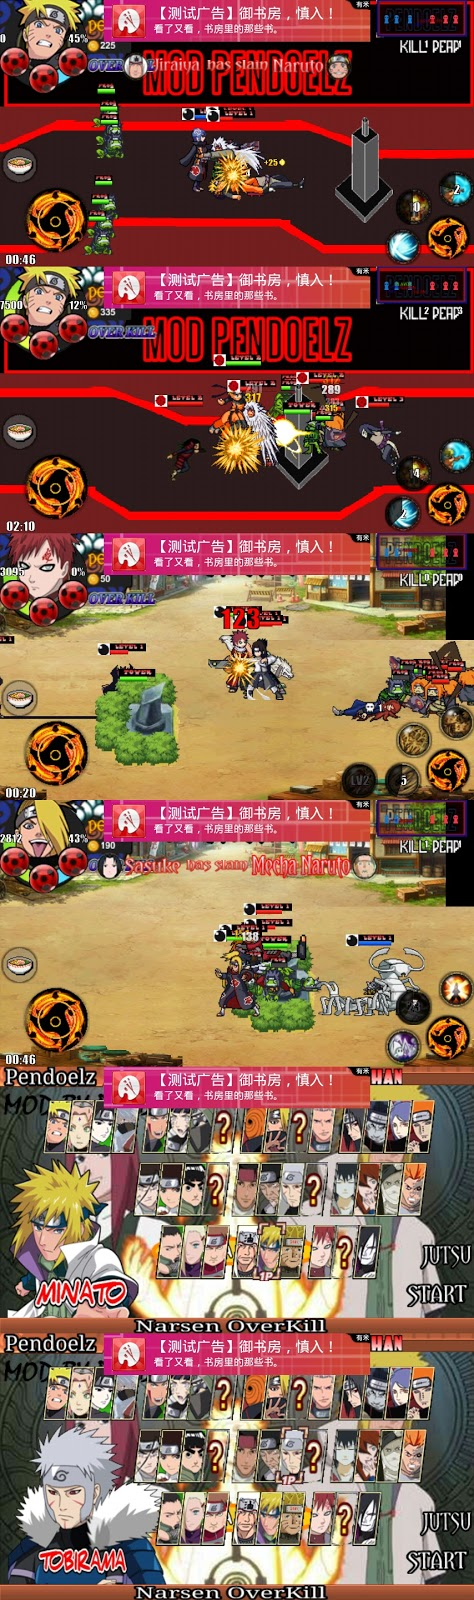 Naruto Senki Overkill Second Version